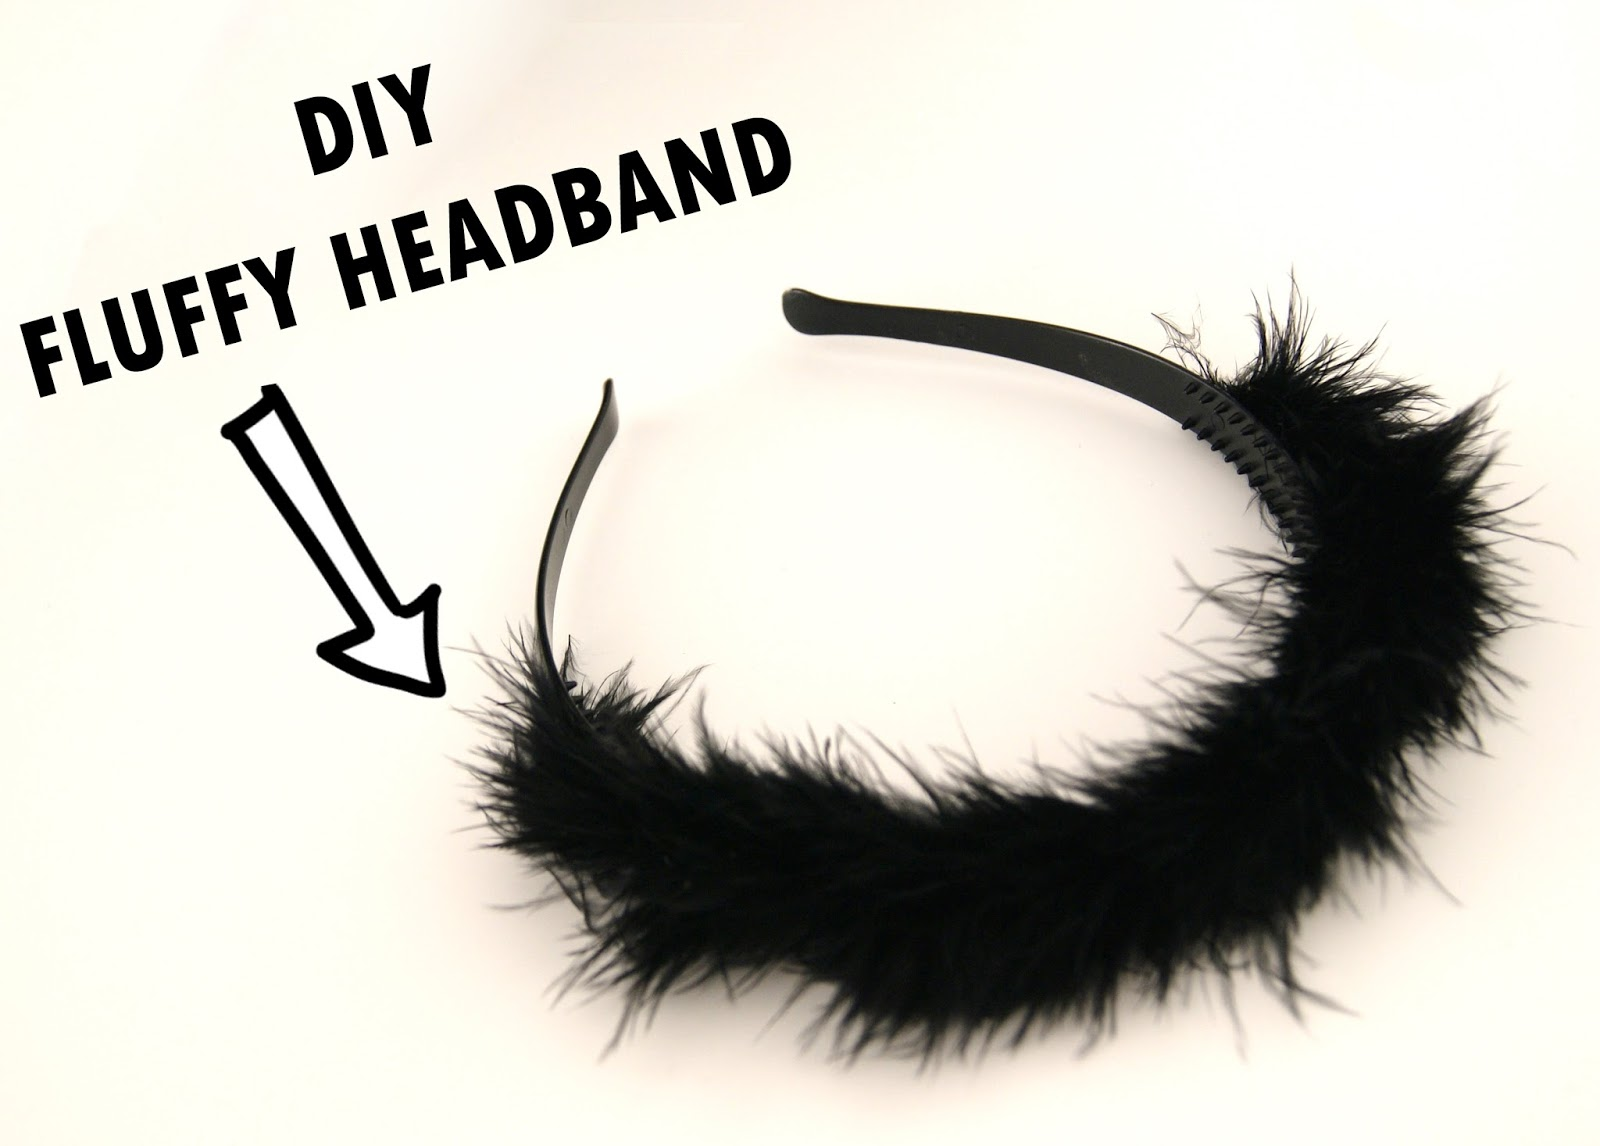 DIY Fluffy Hair Headband